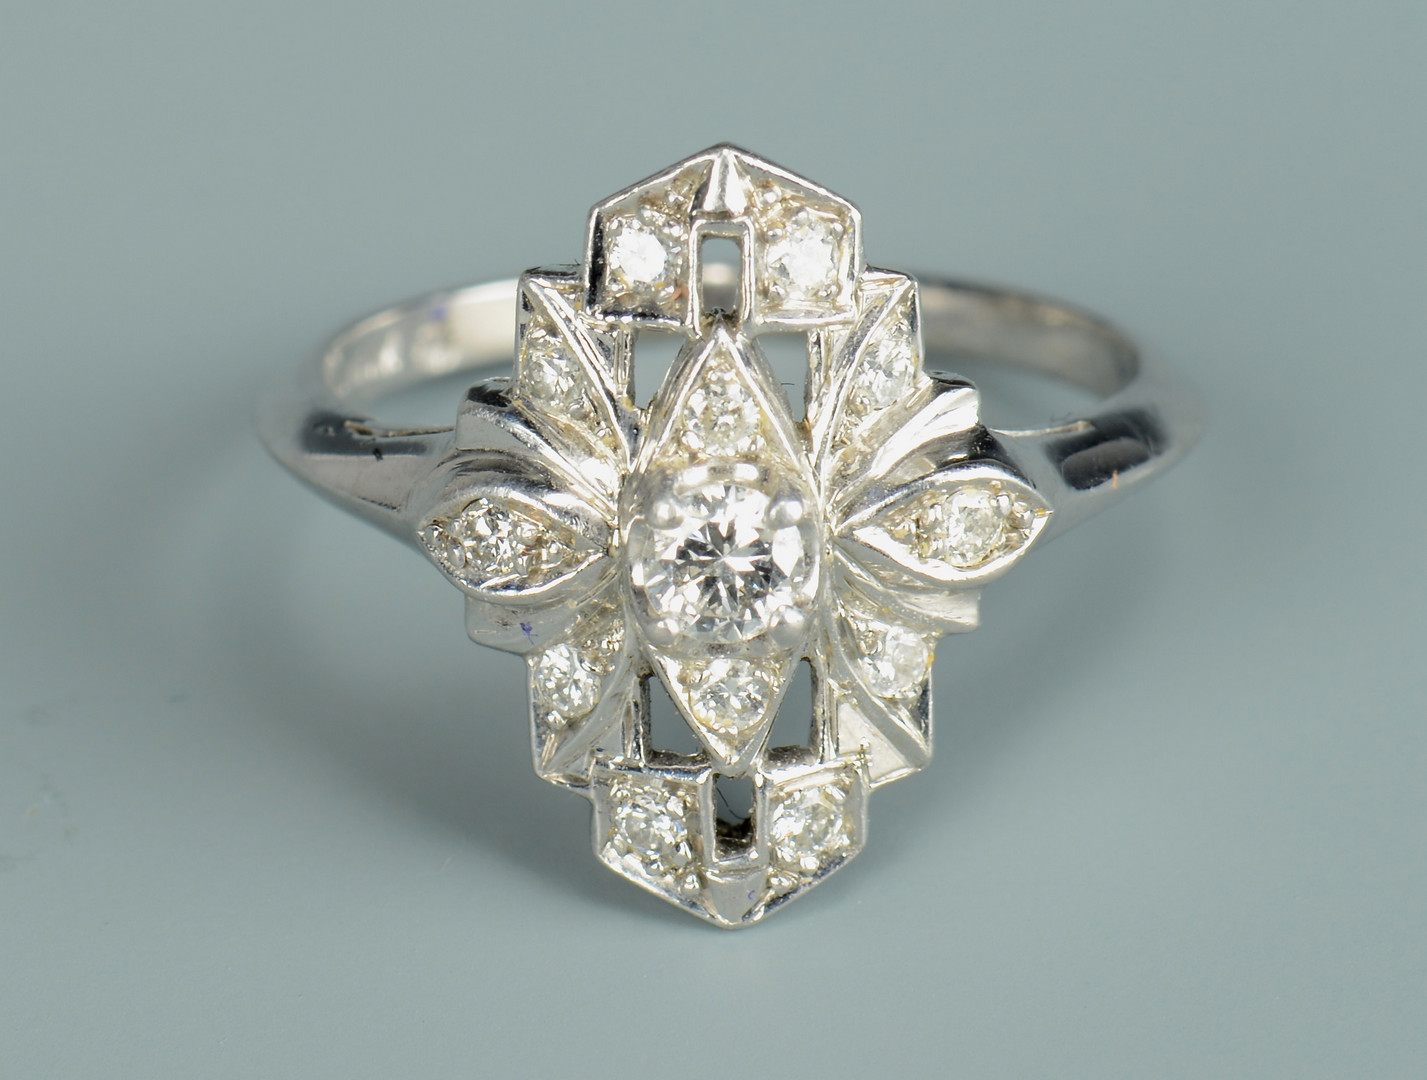 Lot 801: Two Art Deco style Rings